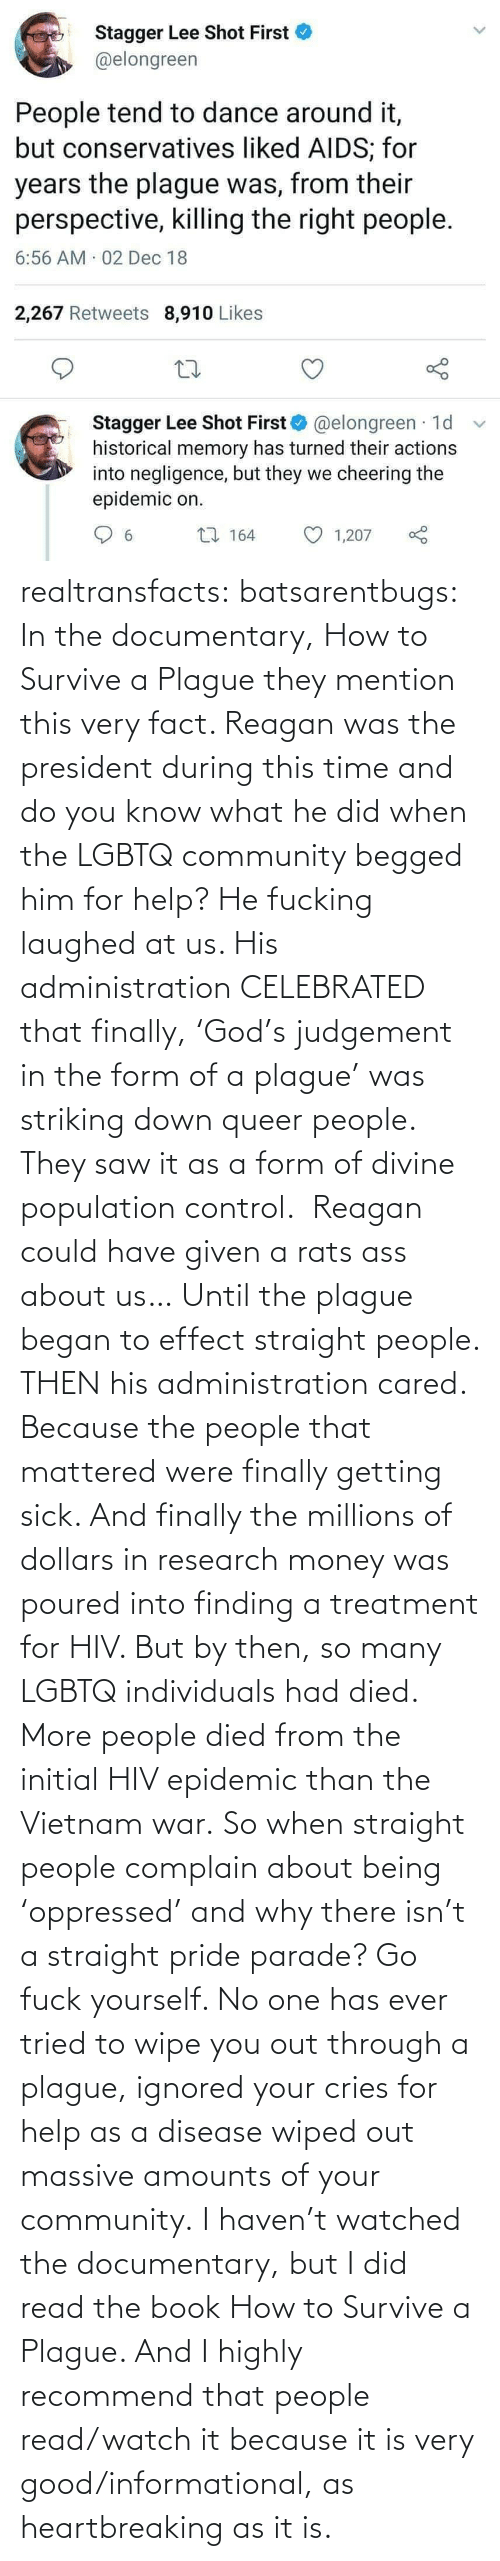 war: Stagger Lee Shot First  @elongreen  People tend to dance around it,  but conservatives liked AIDS; for  years the plague was, from their  perspective, killing the right people.  6:56 AM 02 Dec 18  2,267 Retweets 8,910 Likes  Stagger Lee Shot First O @elongreen · 1d  historical memory has turned their actions  into negligence, but they we cheering the  epidemic on.  27 164  1,207  6. realtransfacts:  batsarentbugs:  In the documentary, How to Survive a Plague they mention this very fact. Reagan was the president during this time and do you know what he did when the LGBTQ community begged him for help? He fucking laughed at us. His administration CELEBRATED that finally, 'God's judgement in the form of a plague' was striking down queer people.  They saw it as a form of divine population control.  Reagan could have given a rats ass about us… Until the plague began to effect straight people. THEN his administration cared. Because the people that mattered were finally getting sick. And finally the millions of dollars in research money was poured into finding a treatment for HIV. But by then, so many LGBTQ individuals had died.  More people died from the initial HIV epidemic than the Vietnam war. So when straight people complain about being 'oppressed' and why there isn't a straight pride parade? Go fuck yourself. No one has ever tried to wipe you out through a plague, ignored your cries for help as a disease wiped out massive amounts of your community.  I haven't watched the documentary, but I did read the book  How to Survive a Plague. And I highly recommend that people read/watch it because it is very good/informational, as heartbreaking as it is.